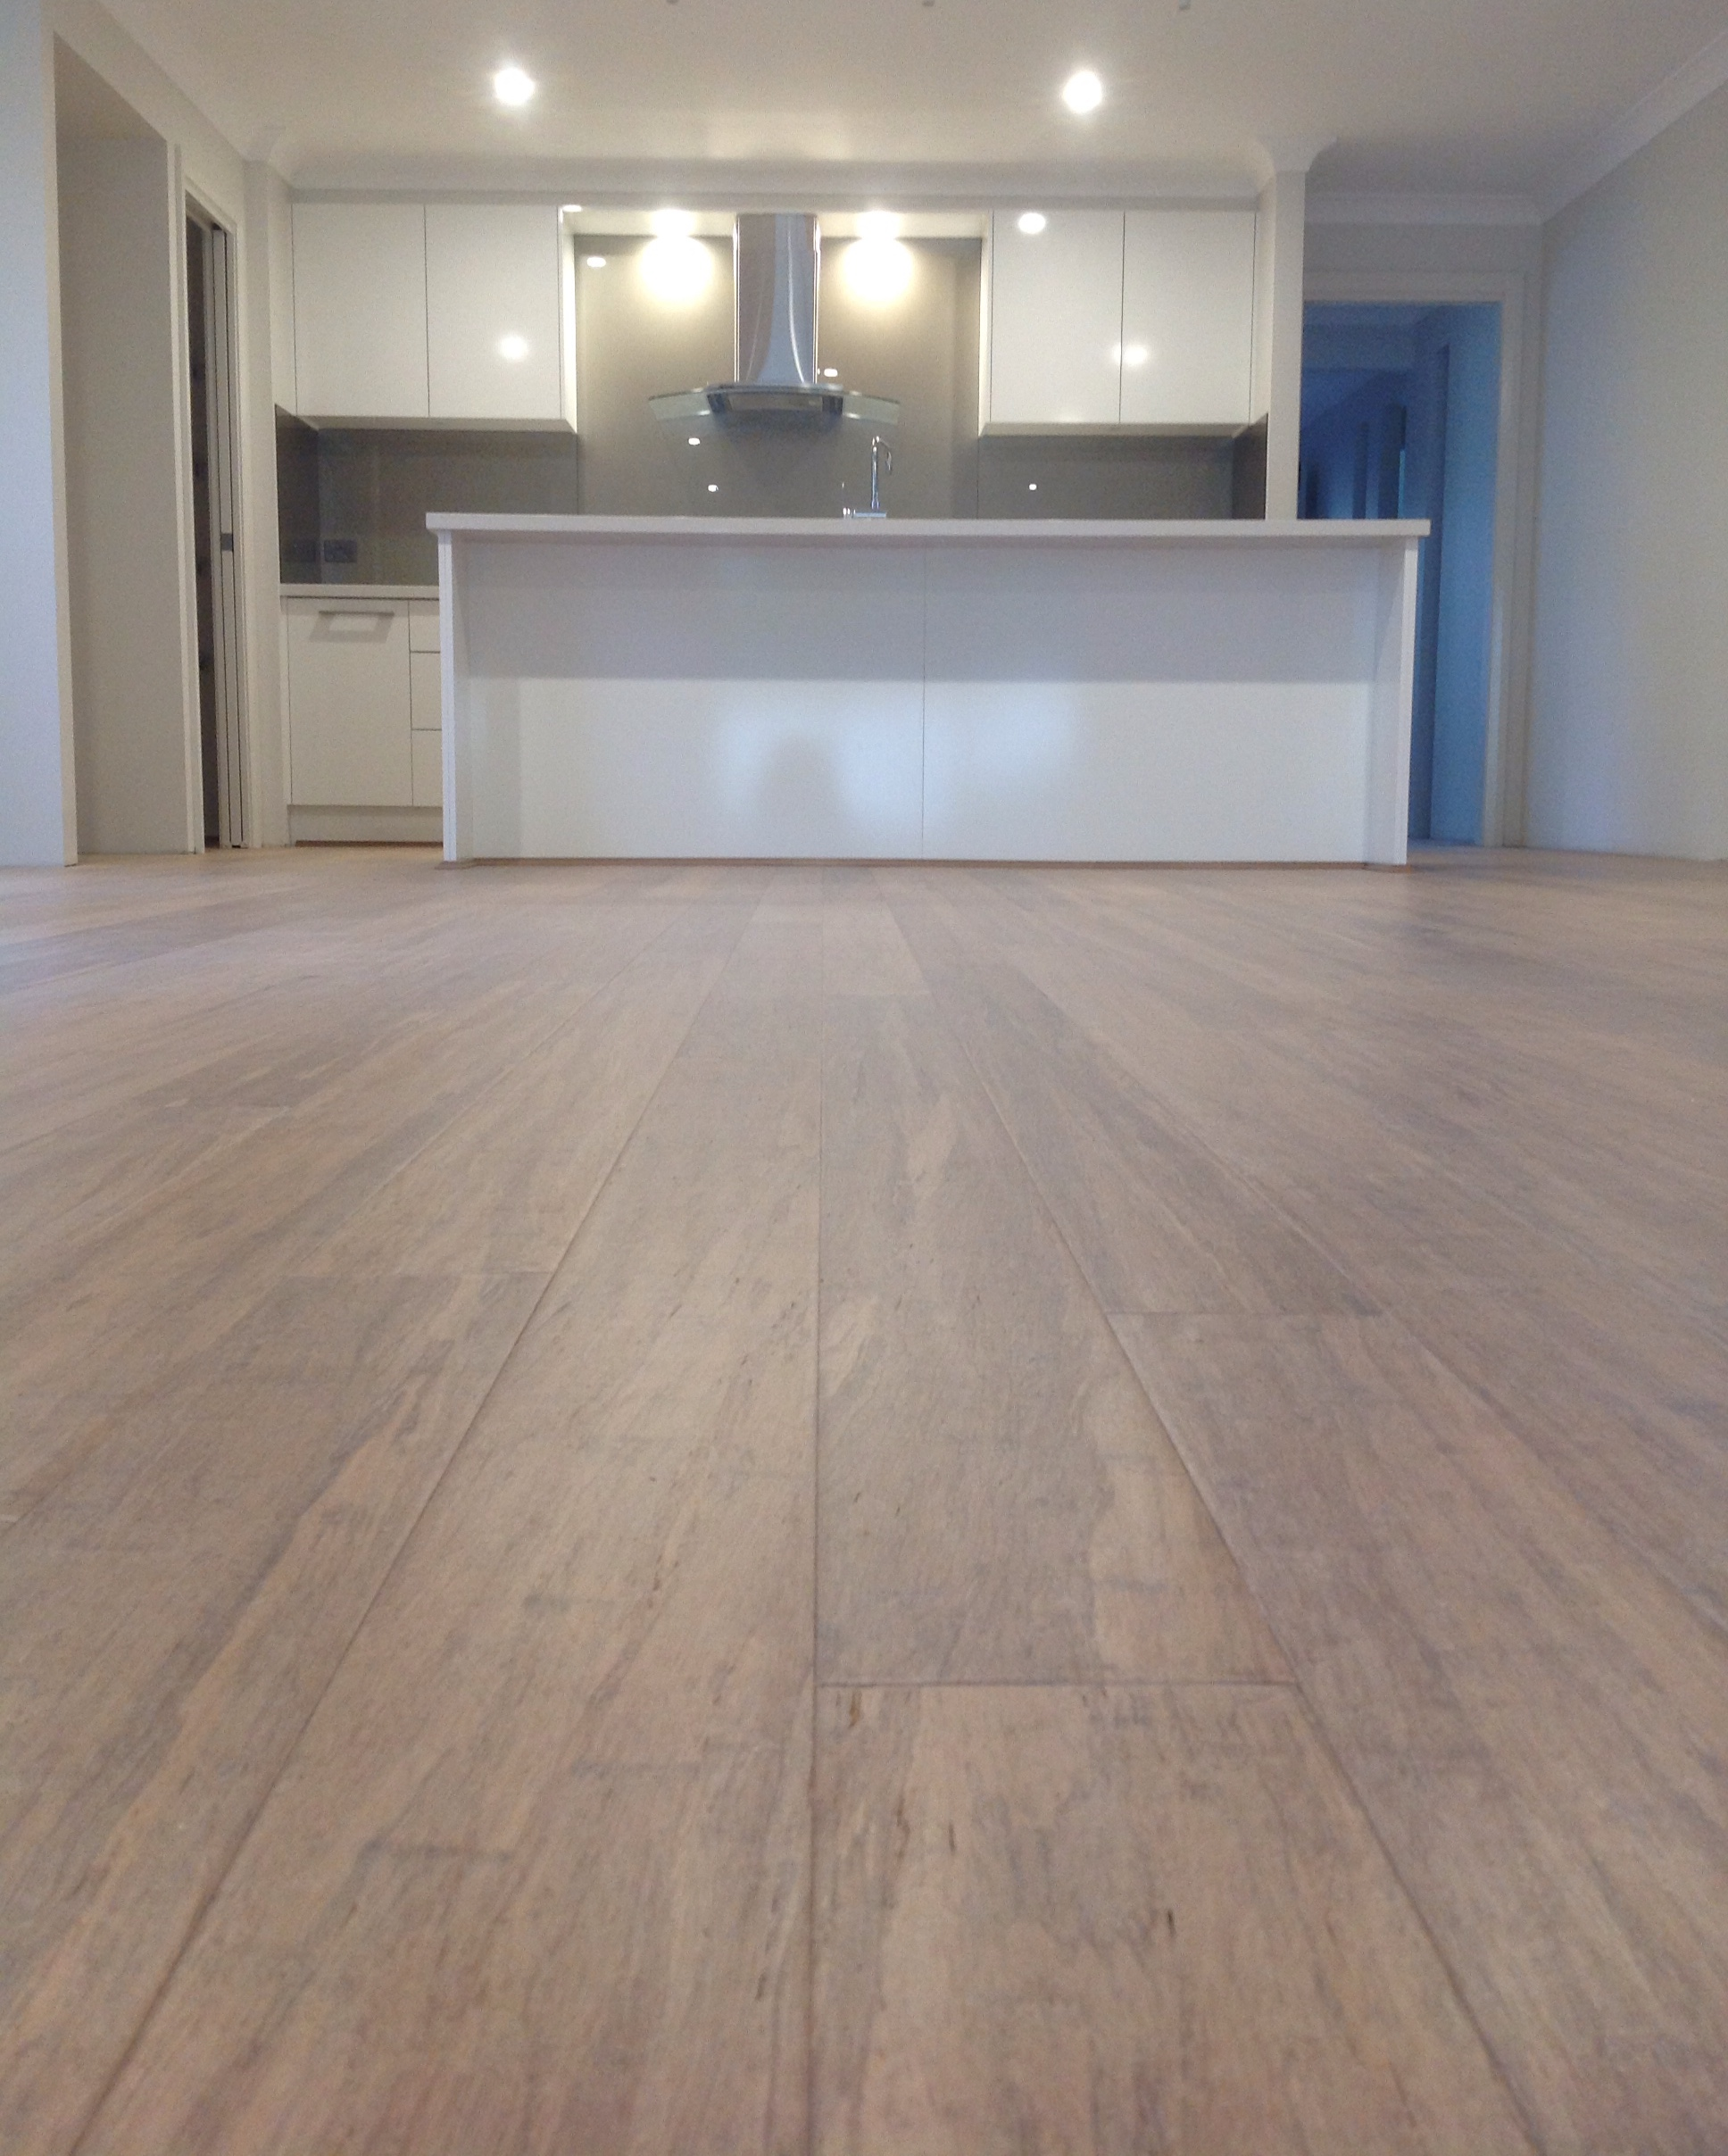 Bamboo Flooring Newcastle NSW Timber Laminate Floating Floors - How expensive is bamboo flooring